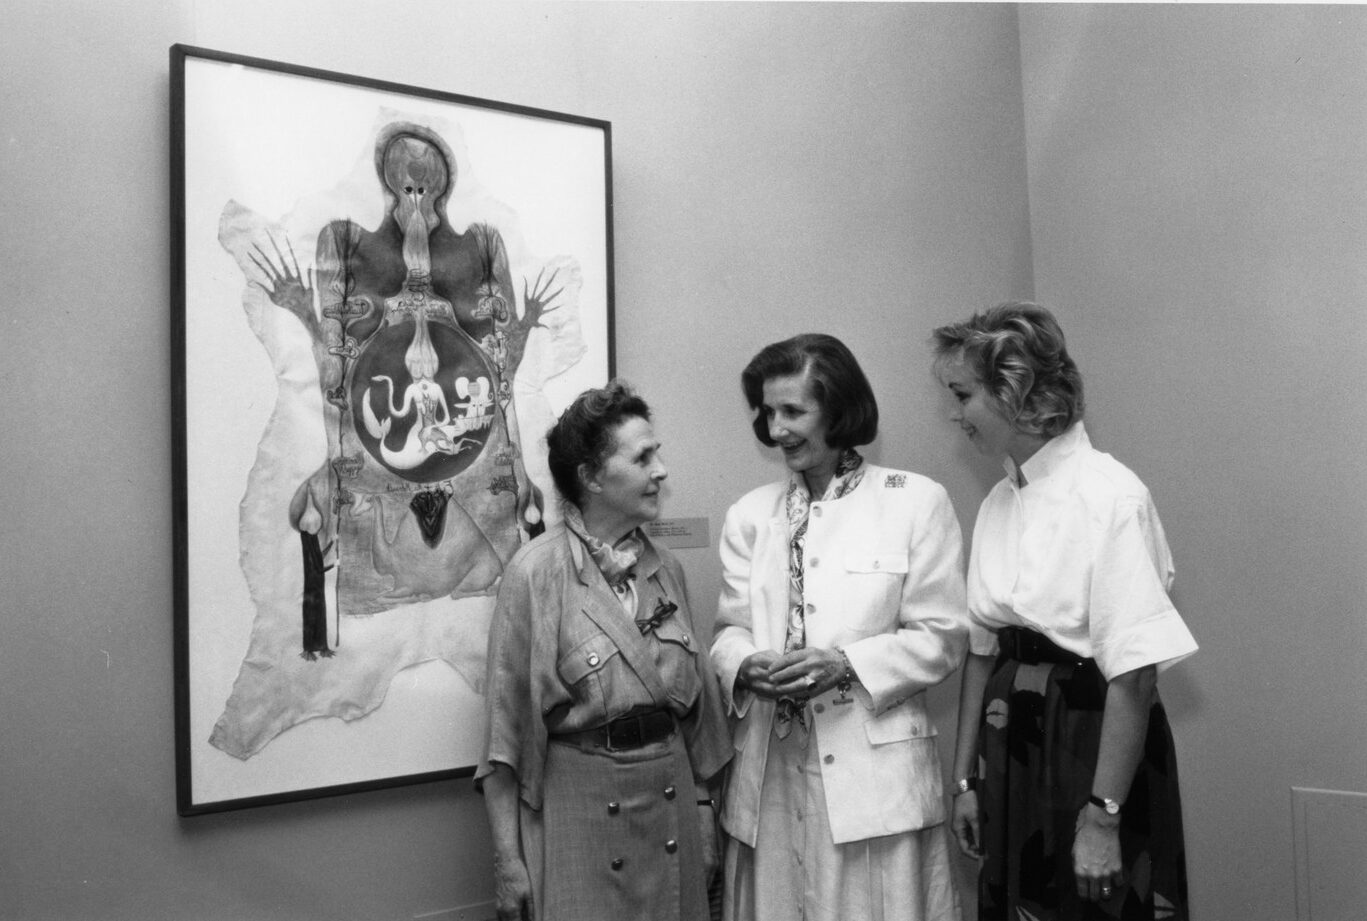 Black and white photograph of three light skinned women casually chatting next to a painting.